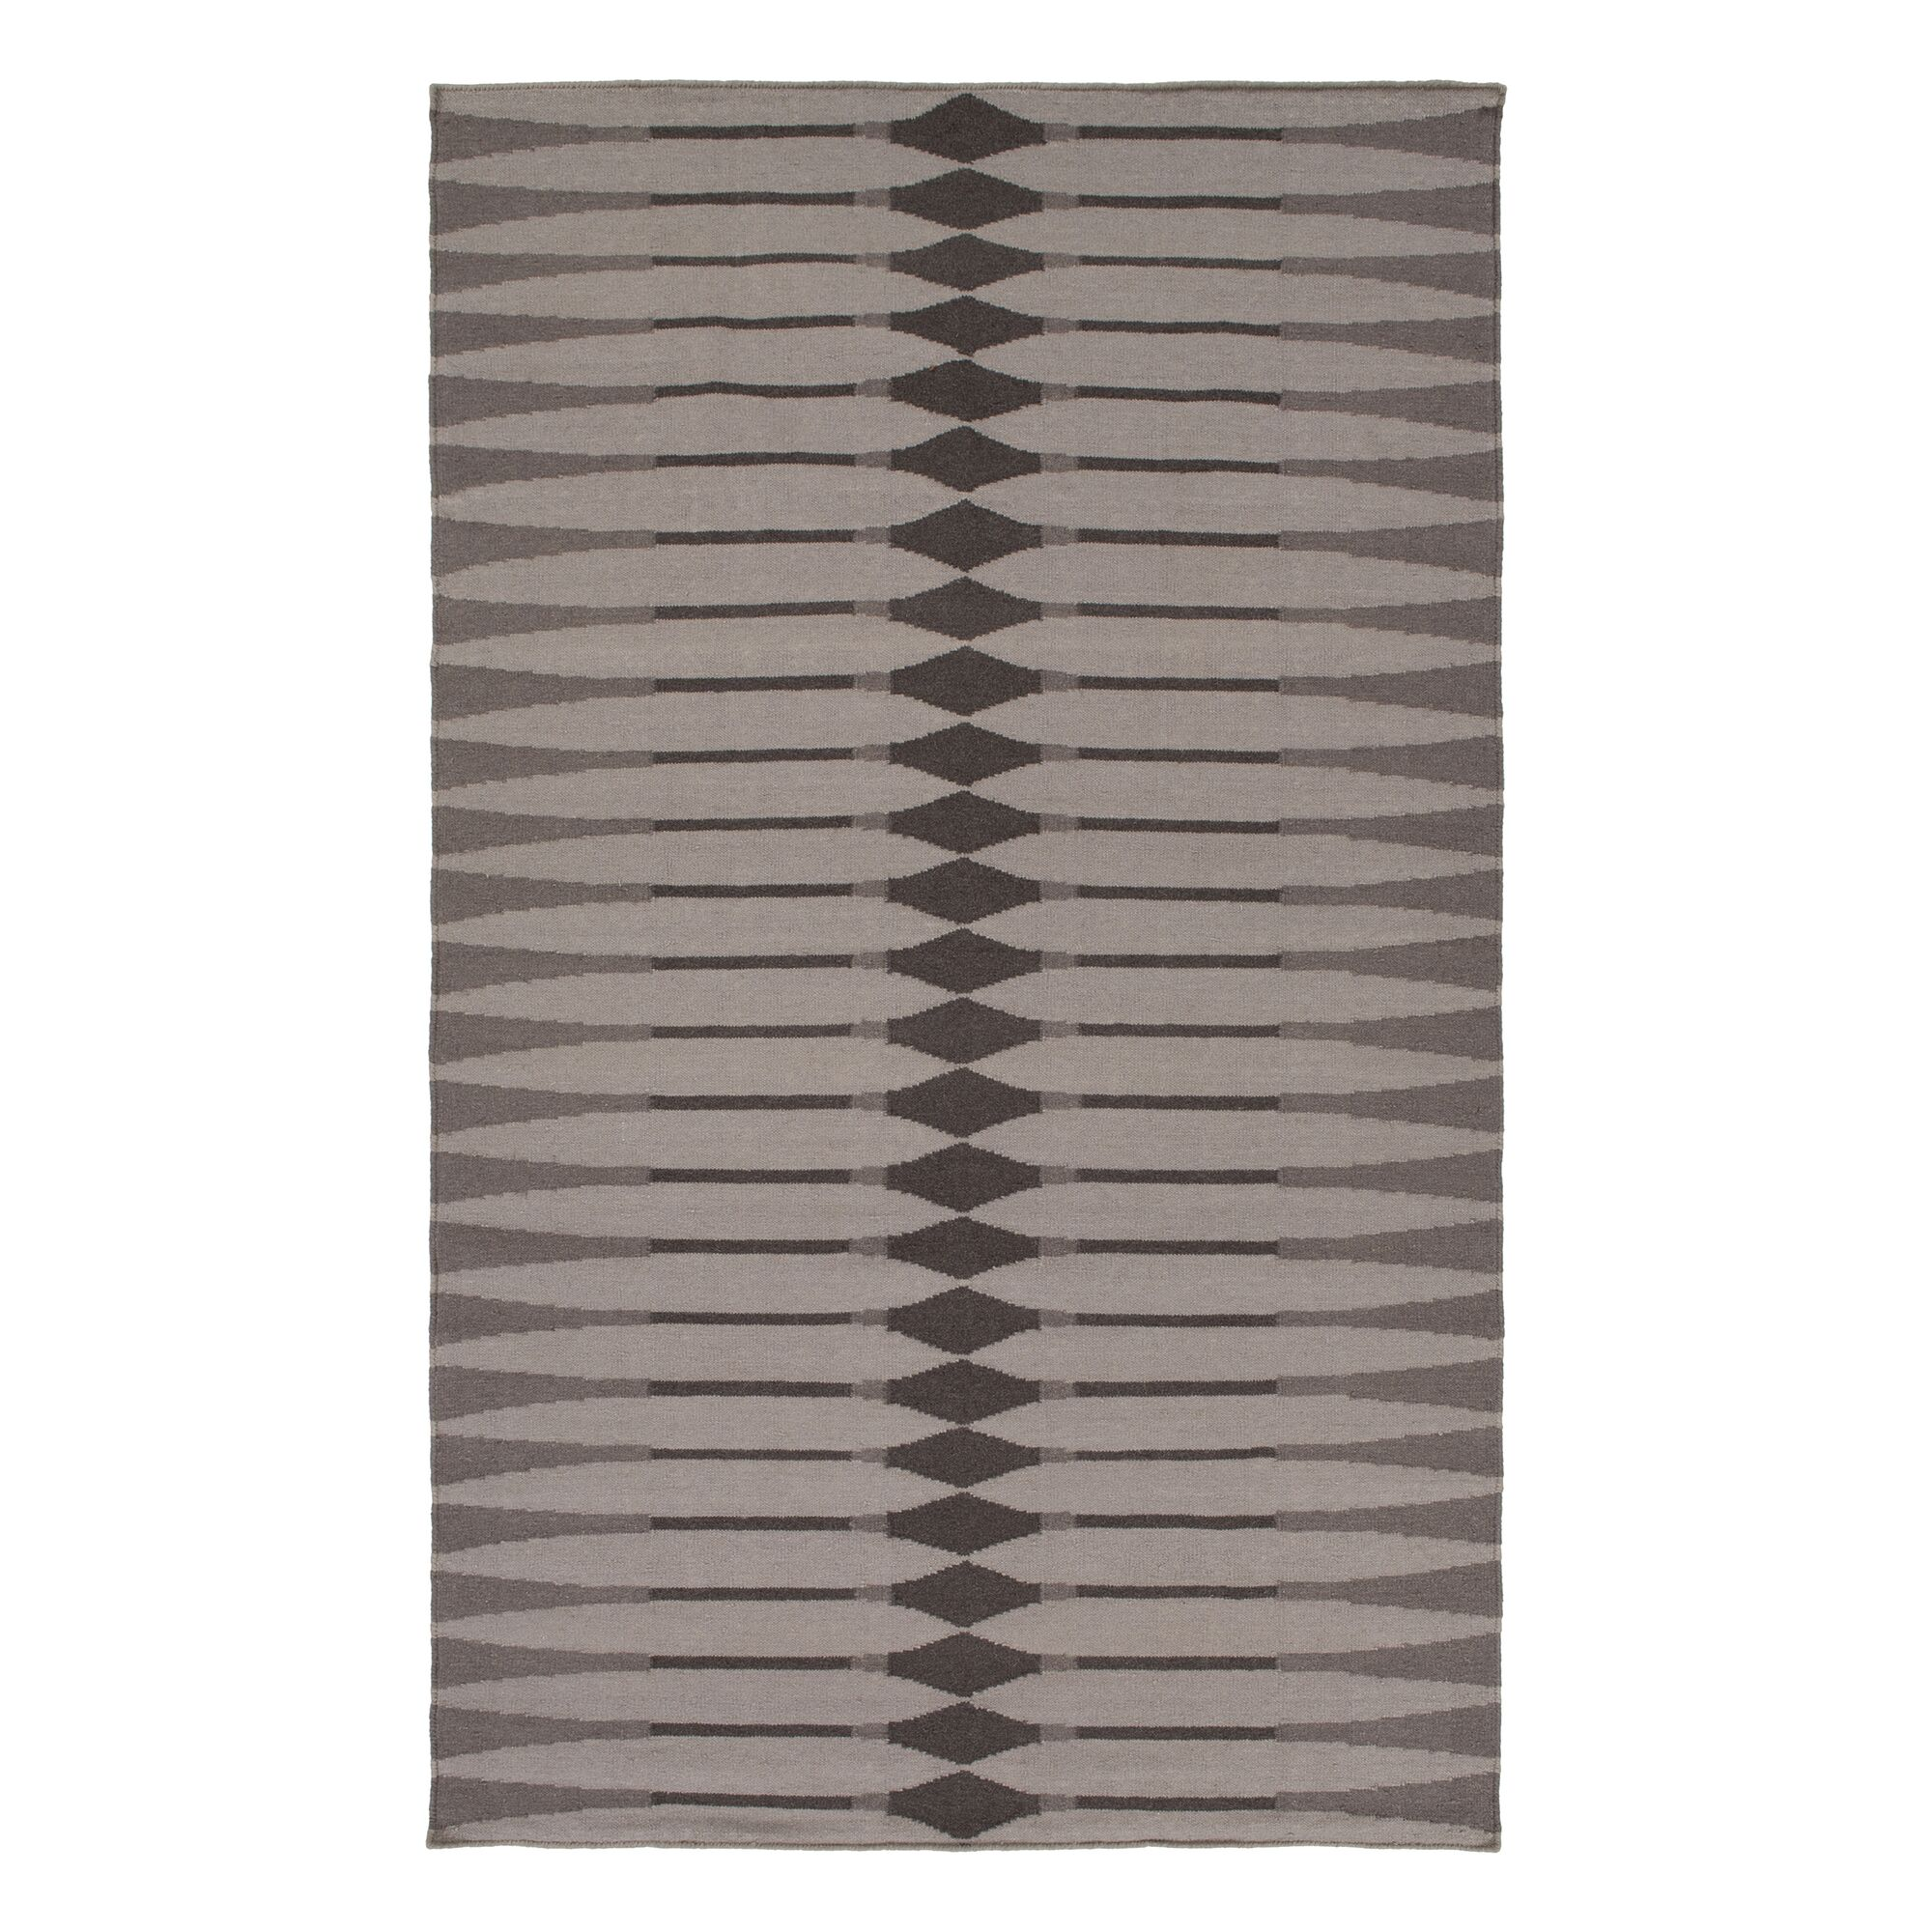 Hand Woven Cotton Brown/Gray Area Rug Rug Size: Rectangle 4' x 6'